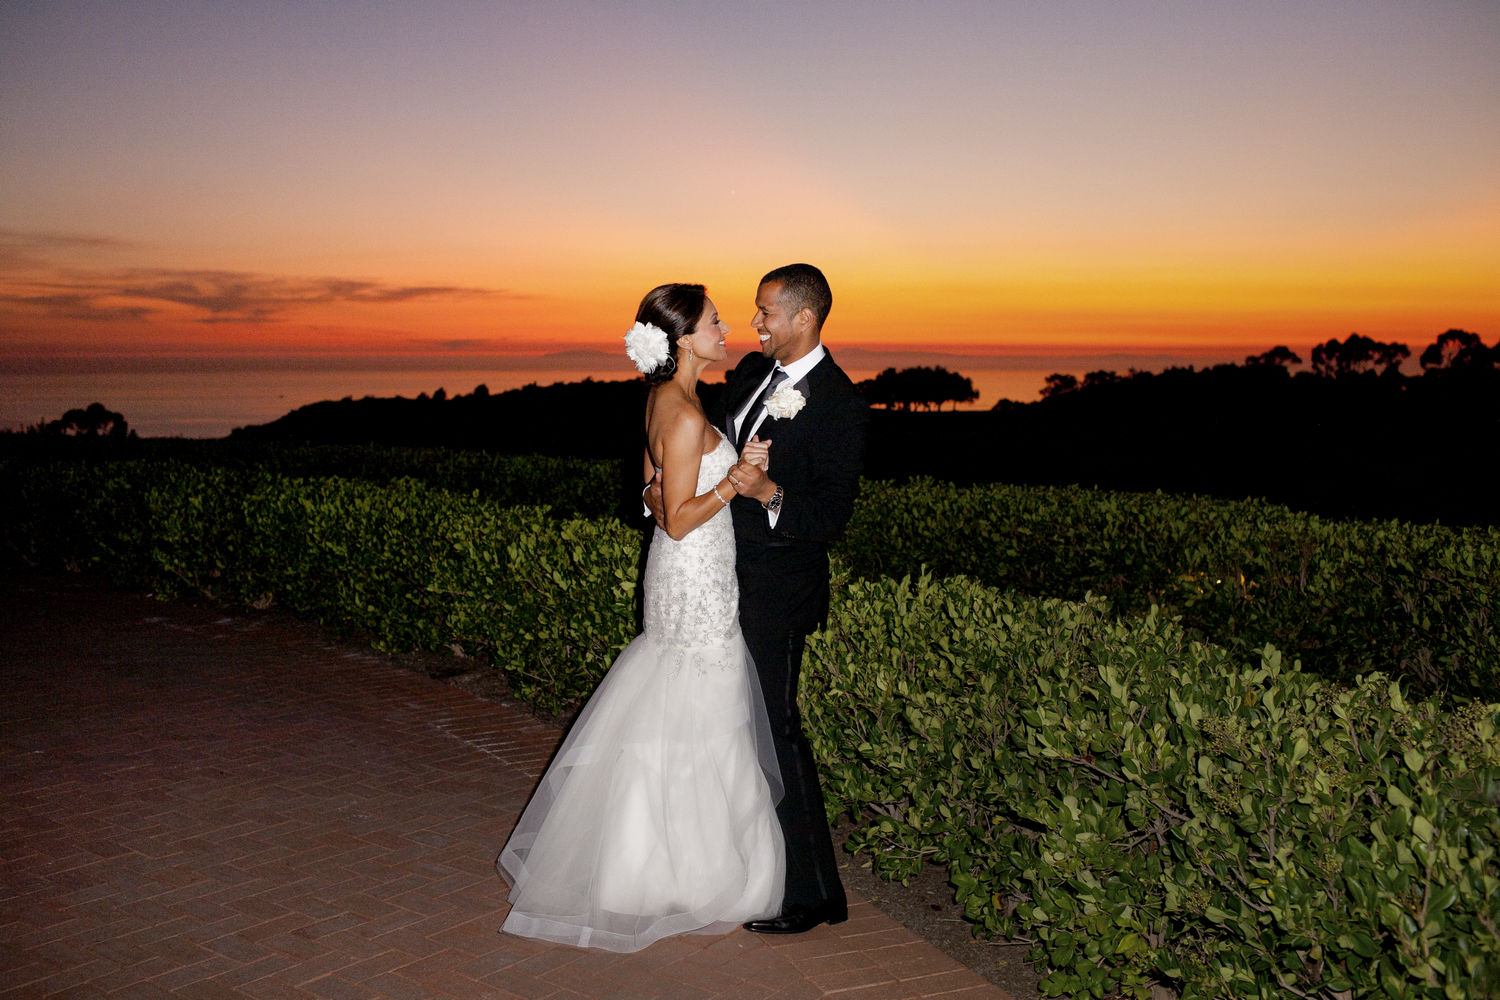 wedding-pelican-hill-resort-jindy-tilmann-171.jpg